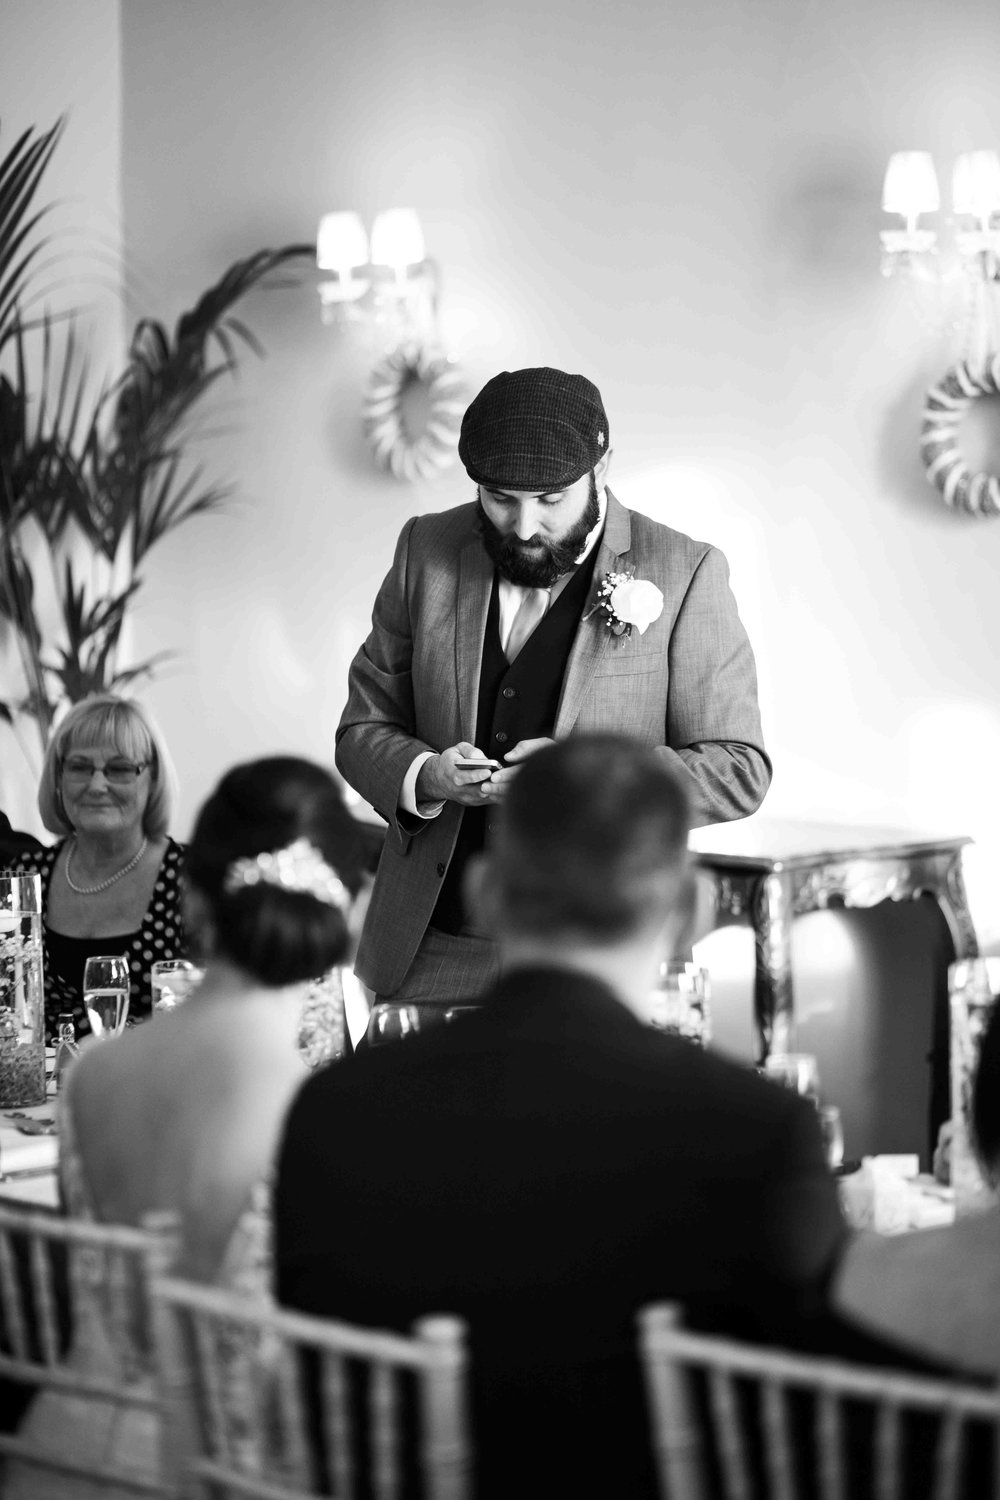 wedding-photos-willenhall-wedding-photographer-wolverhampton-wedding-photographer-west-midlands-wedding-photographer-birmingham-groom-speech.jpg